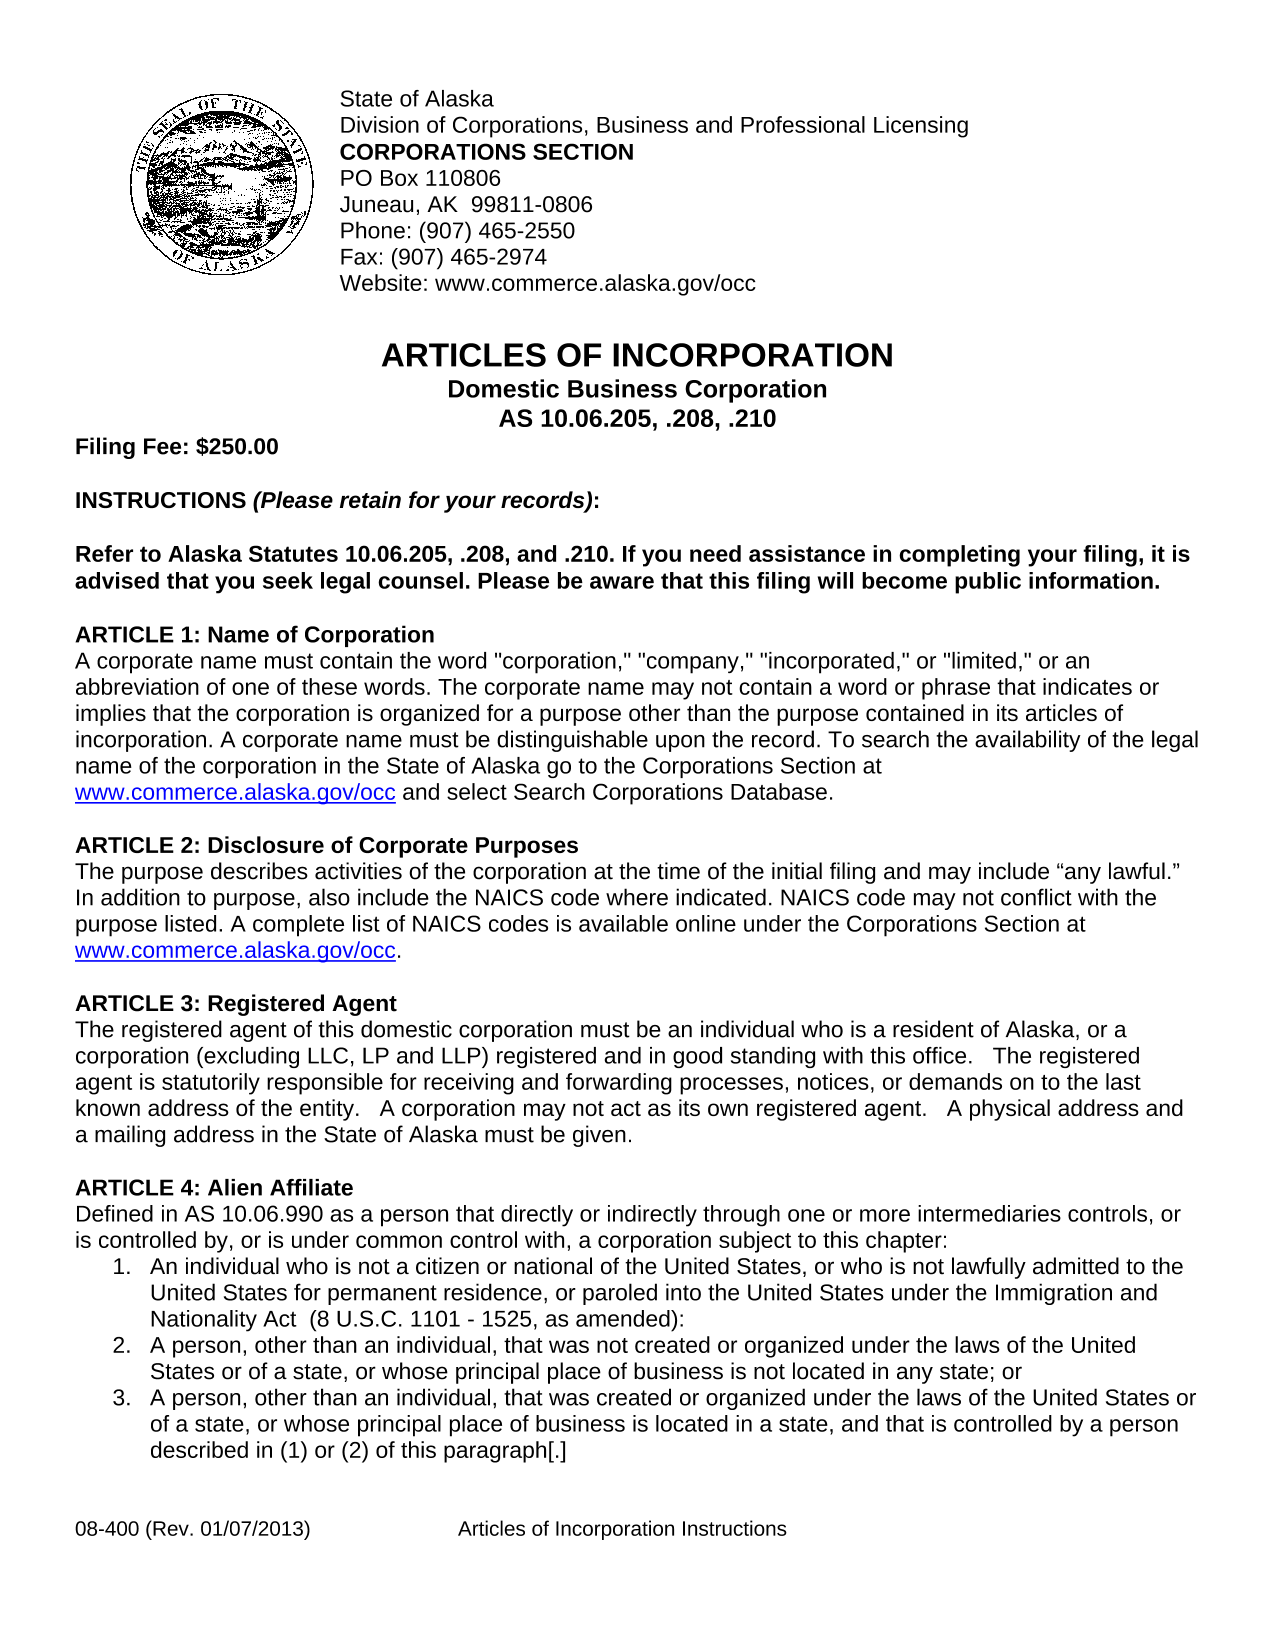 Alaska Articles of Incorporation